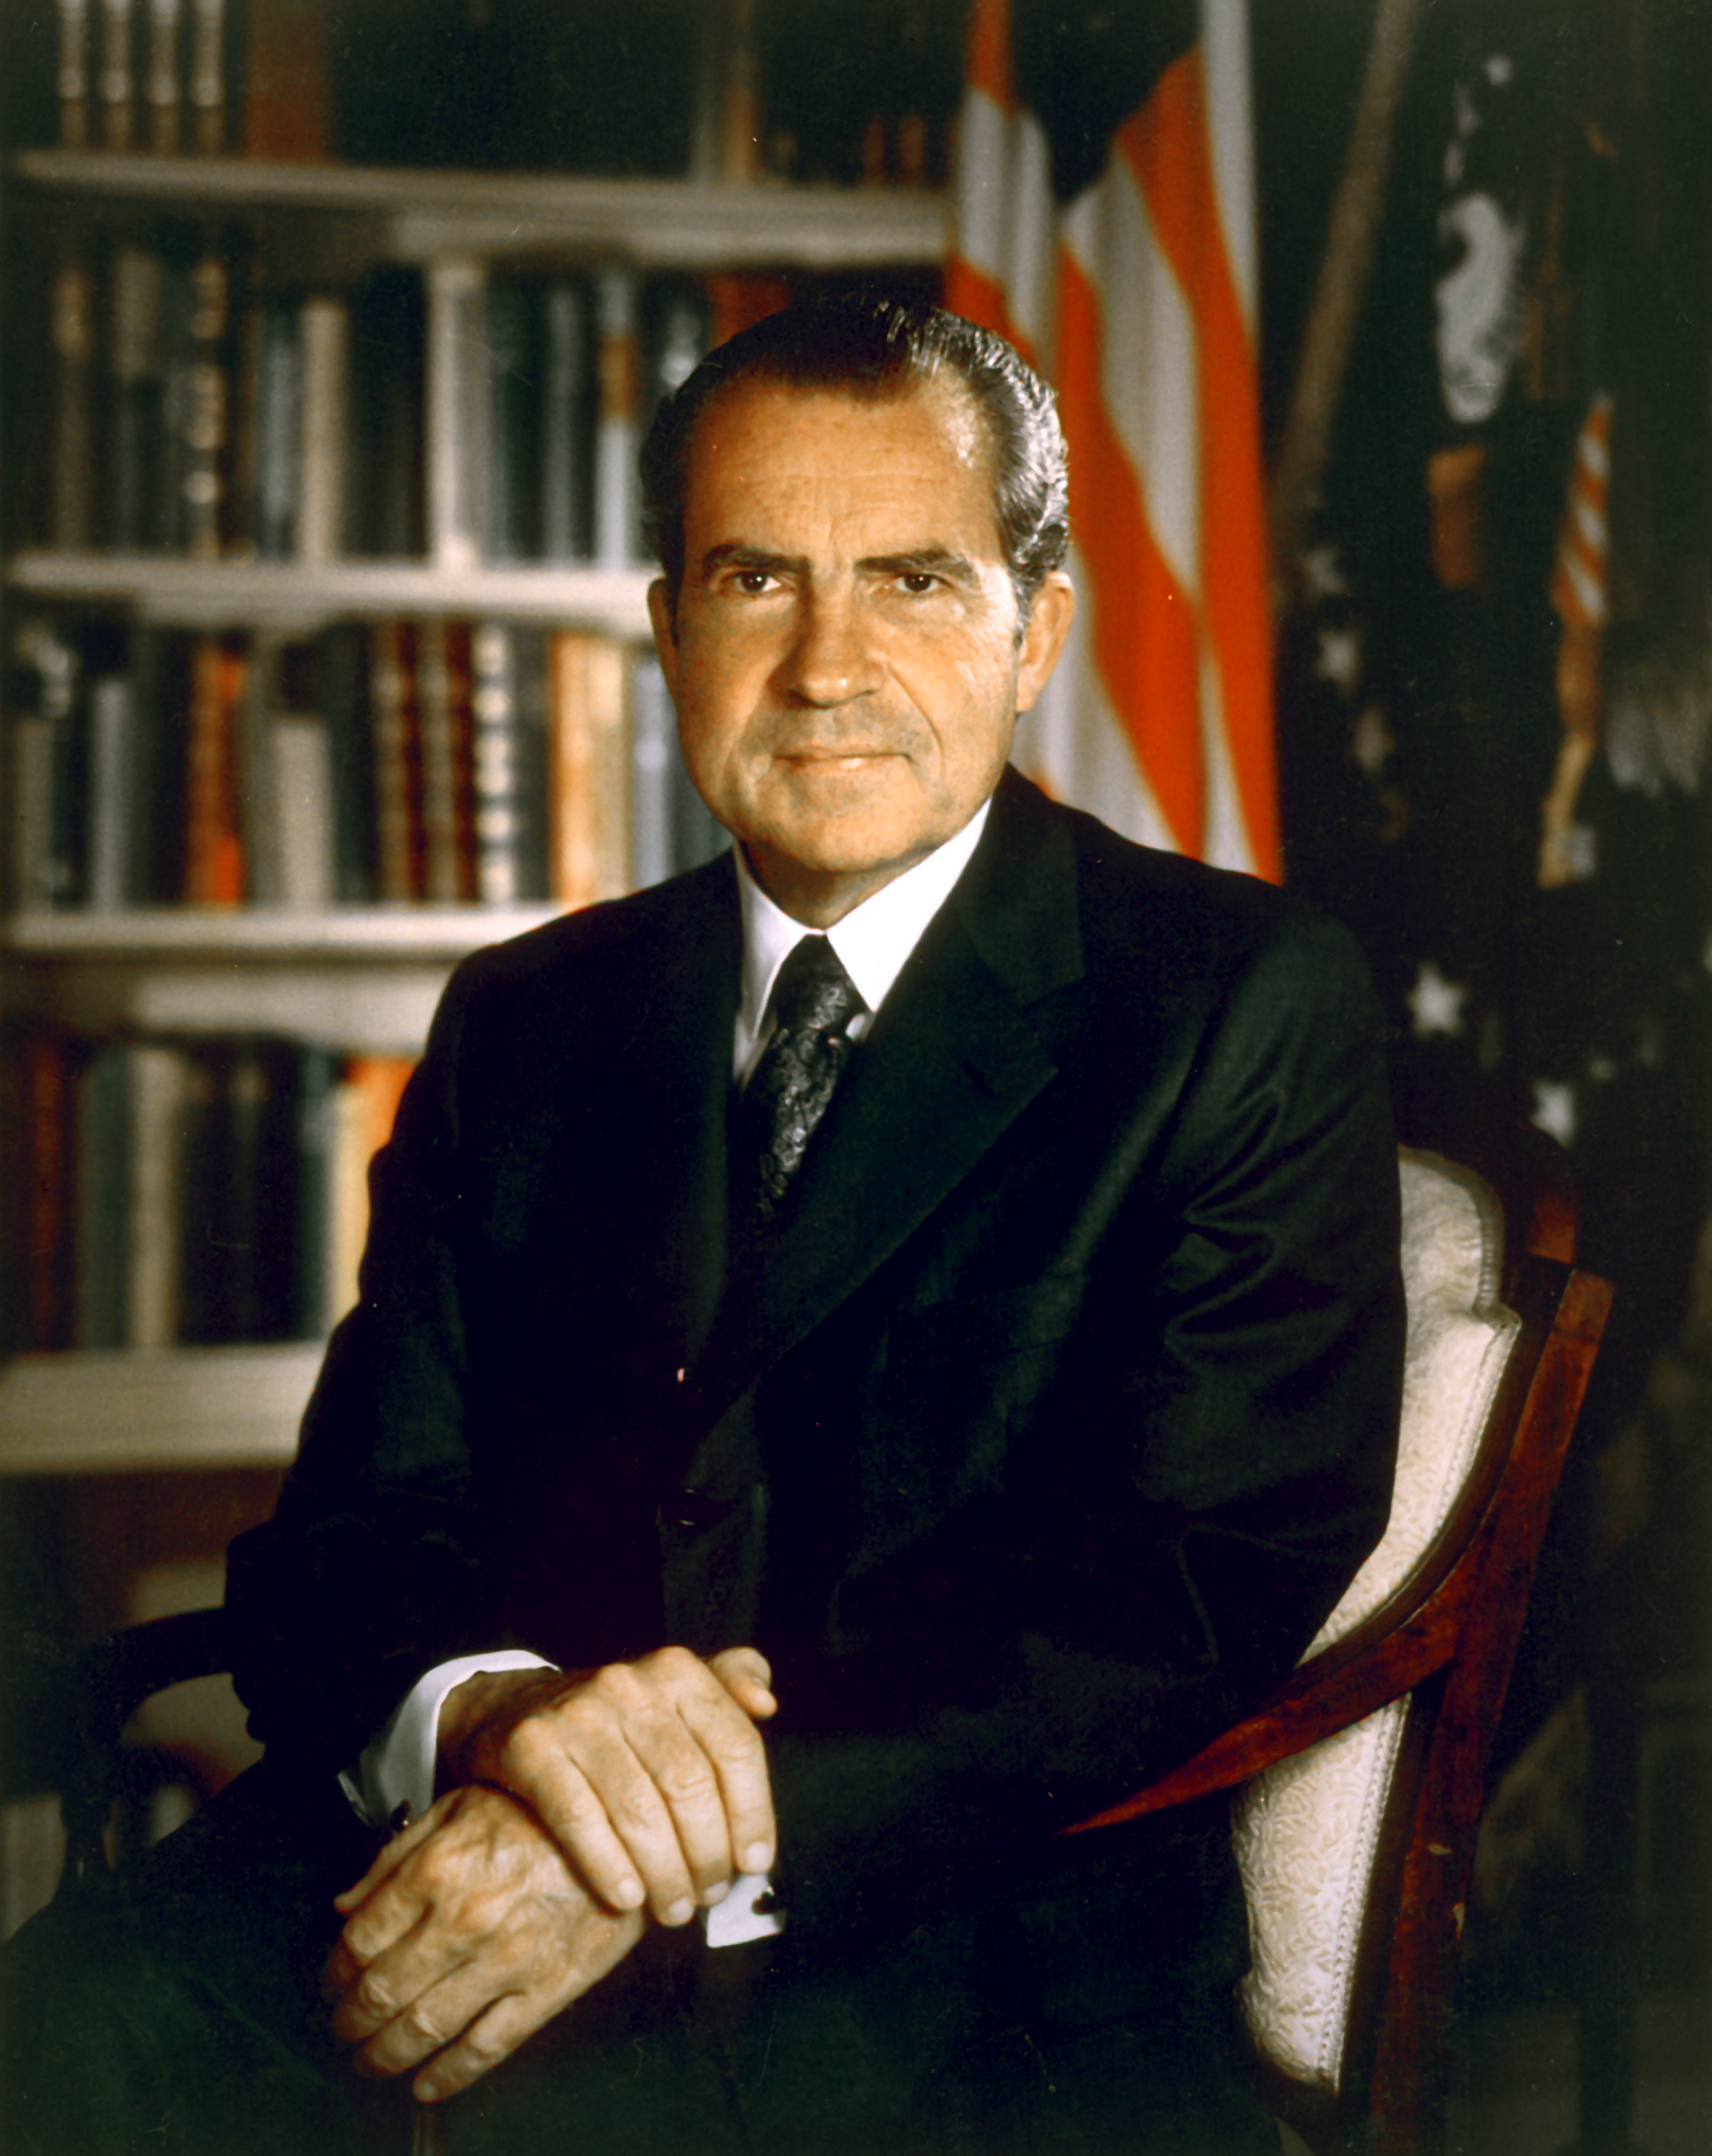 A Look at the Life of George Walker Bush